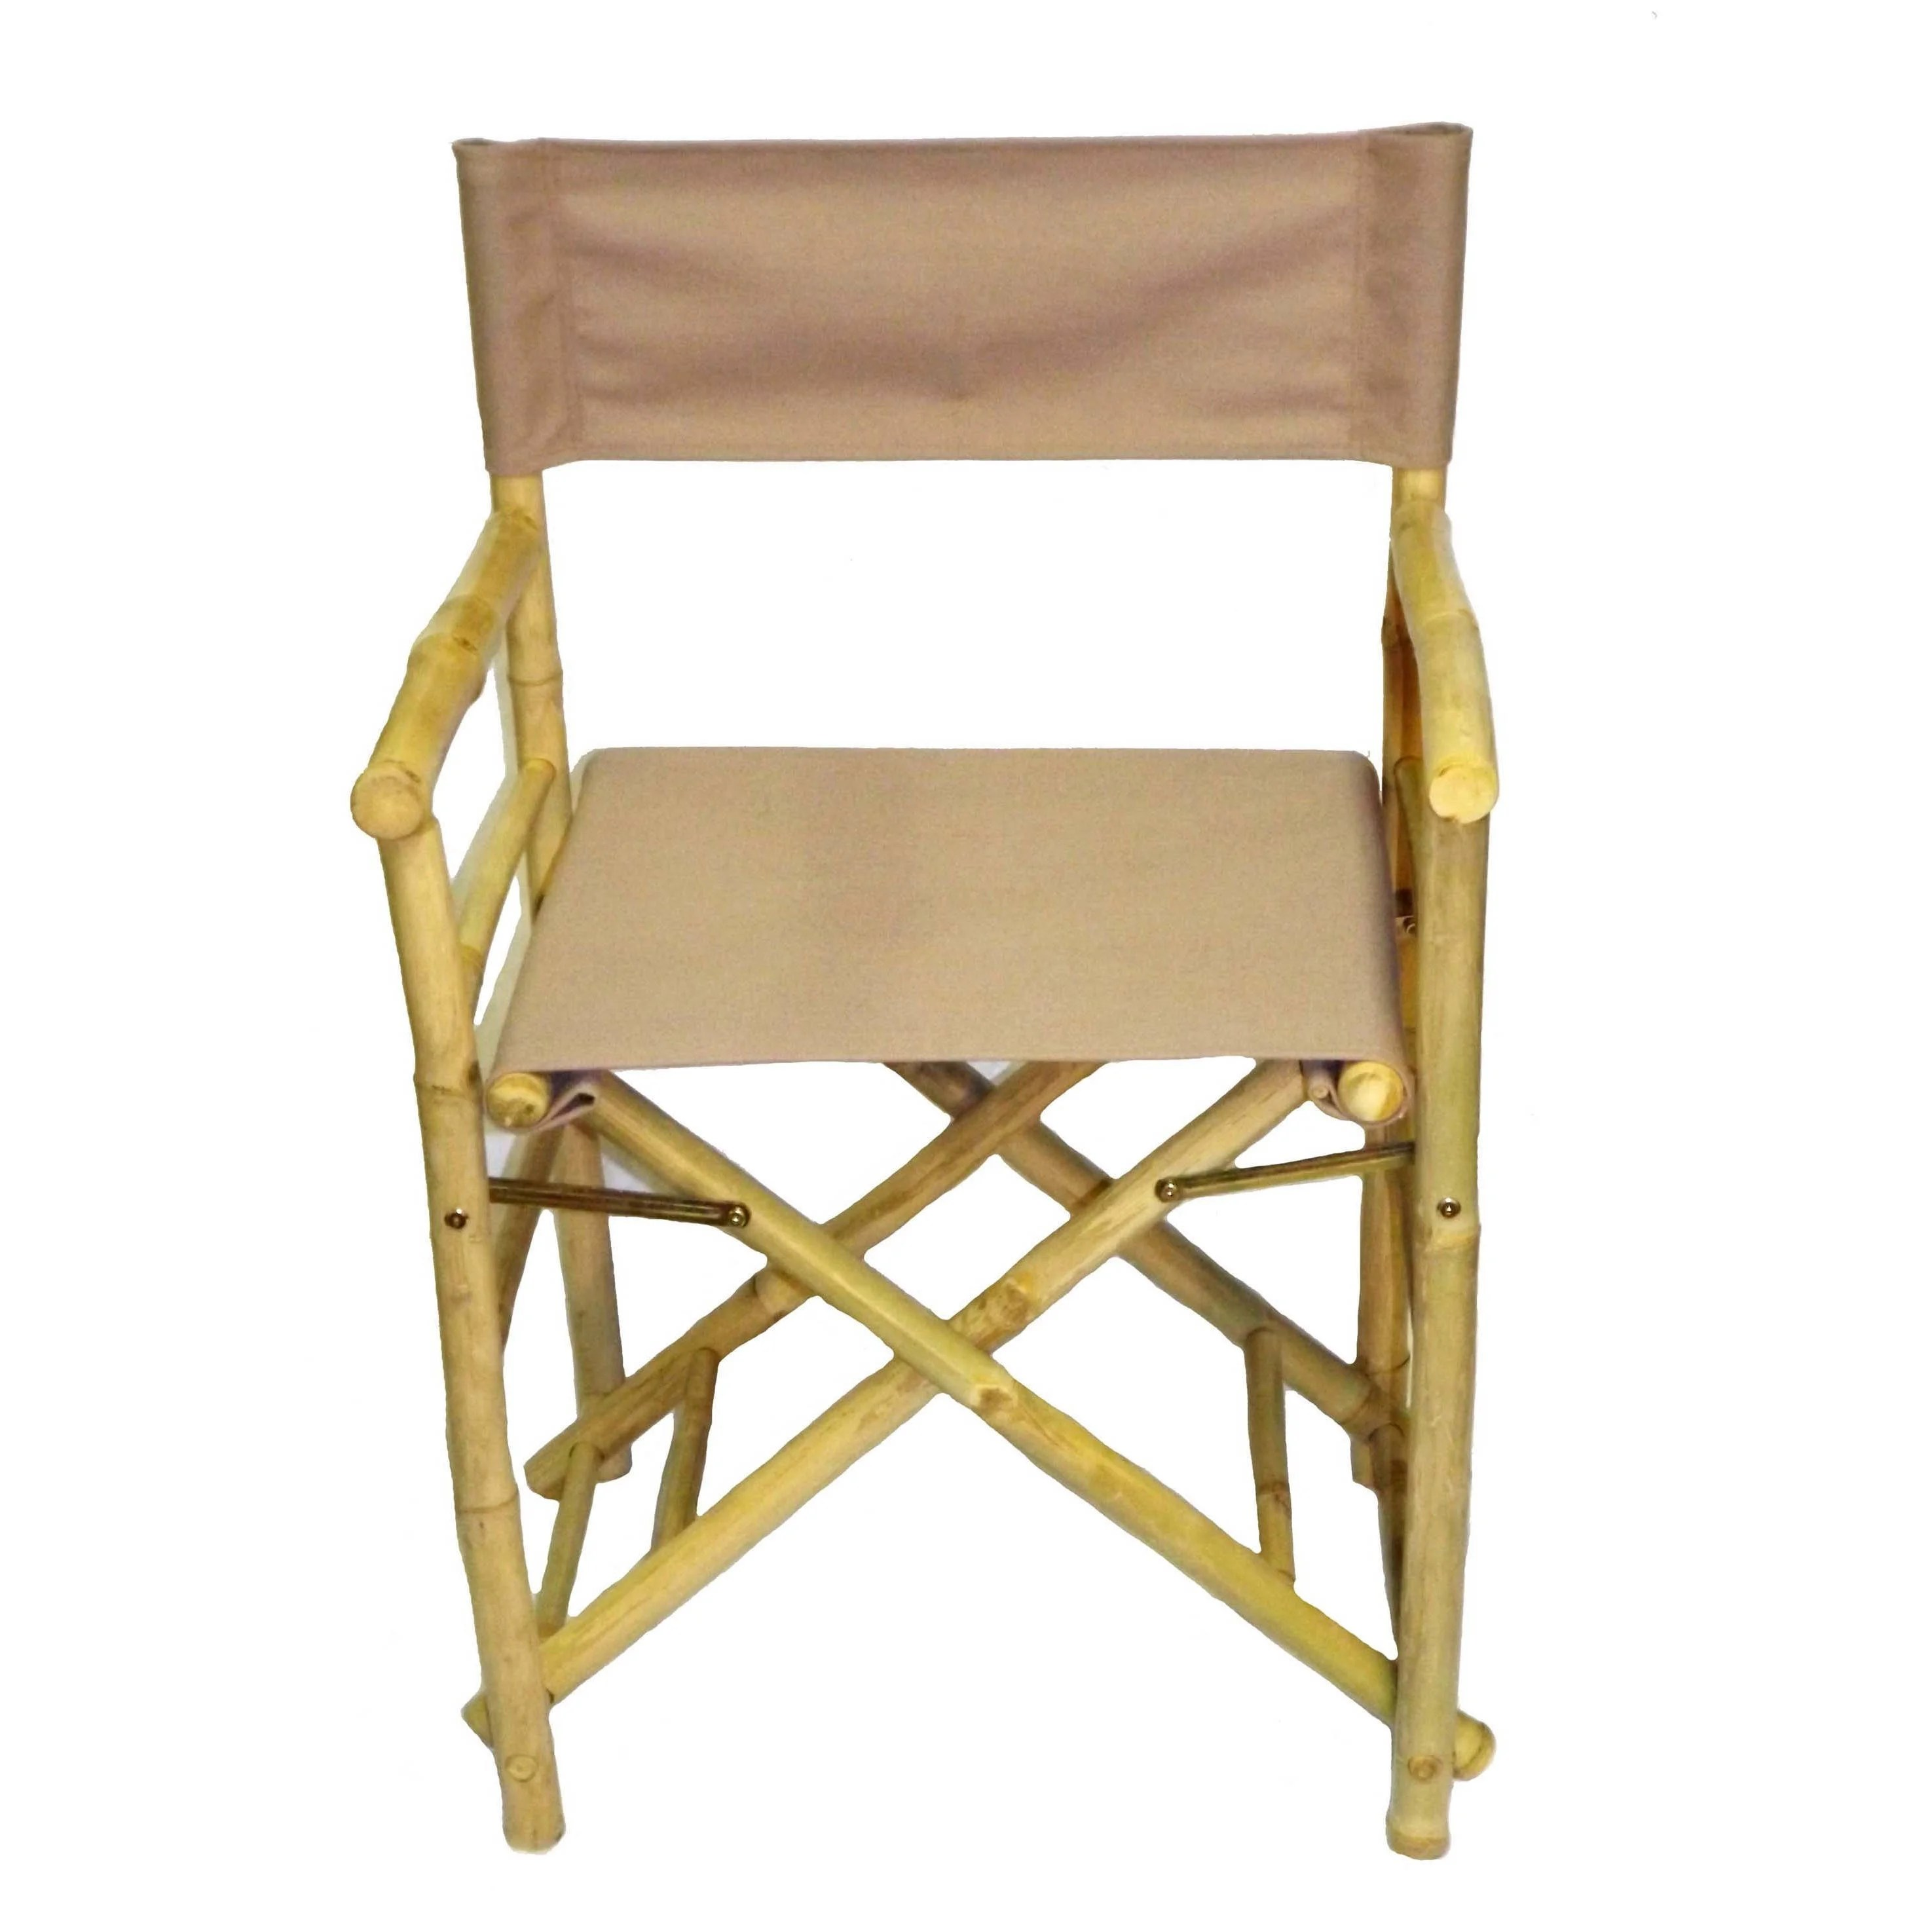 bamboo directors chairs outdoor chair cusions shop handmade set of 2 director s with blue canvas vietnam free shipping today overstock com 10171770